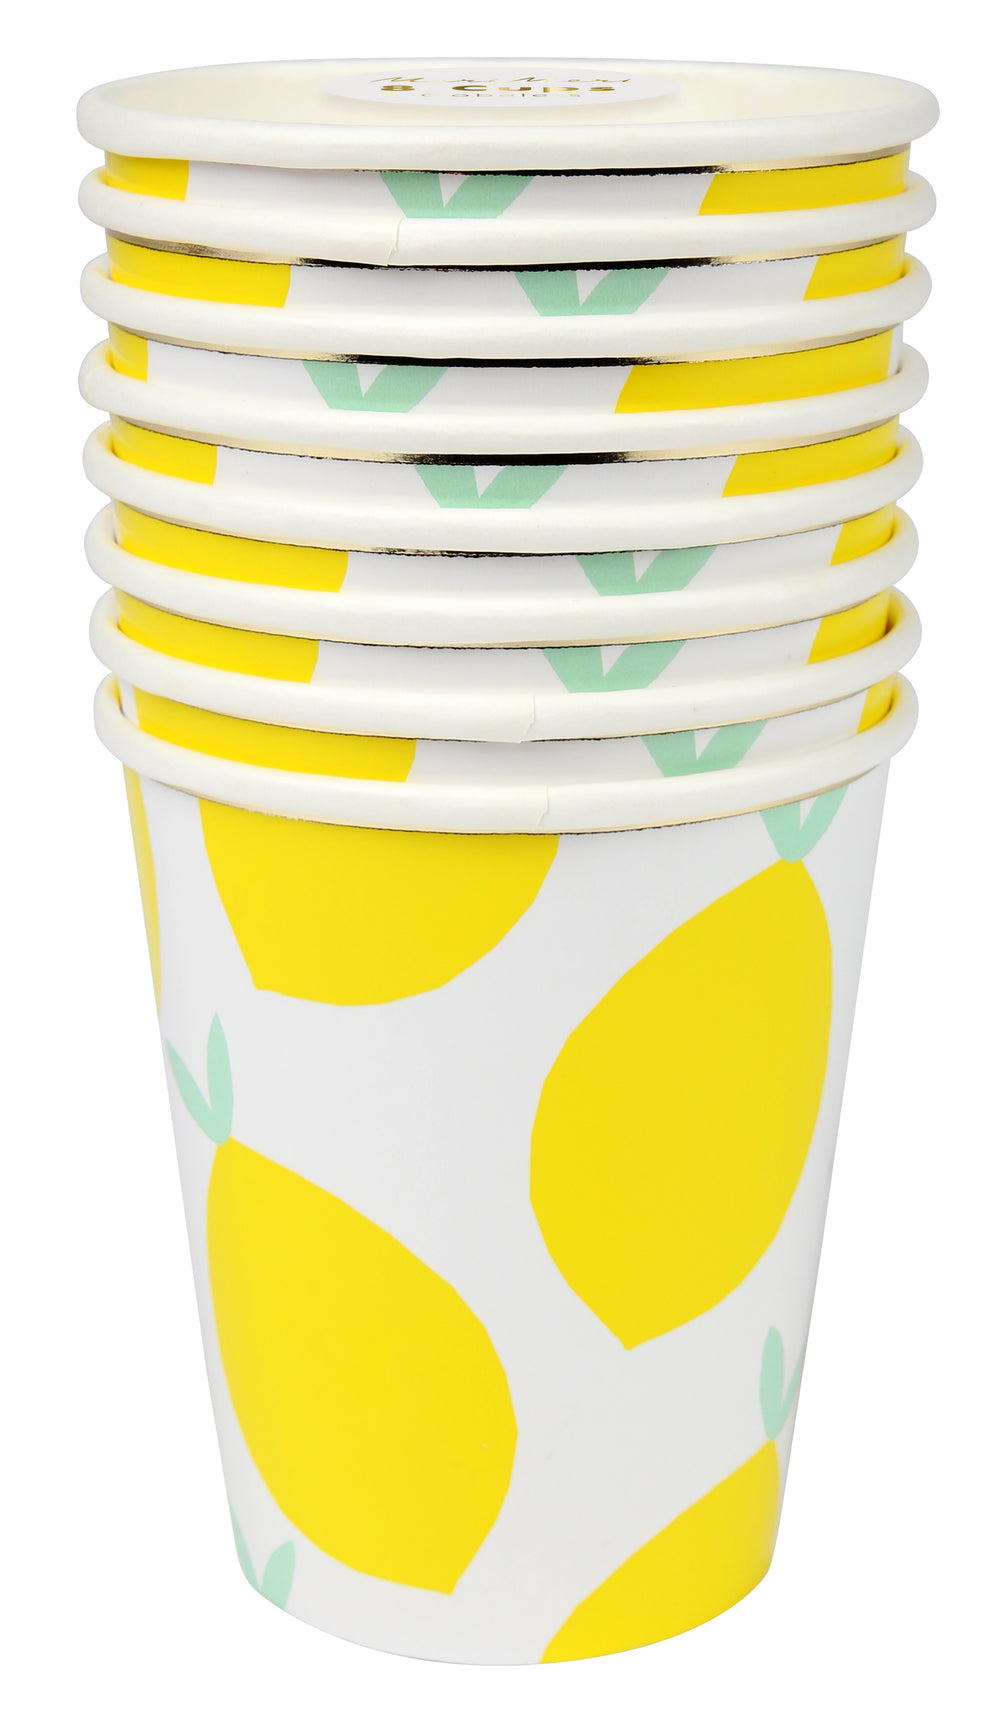 white cup with a bright yellow lemon print embellished with a gold band at the brim of each cup, set of 8, for use with hot and cold beverages, 9 ounces, $5.95 pack of 8